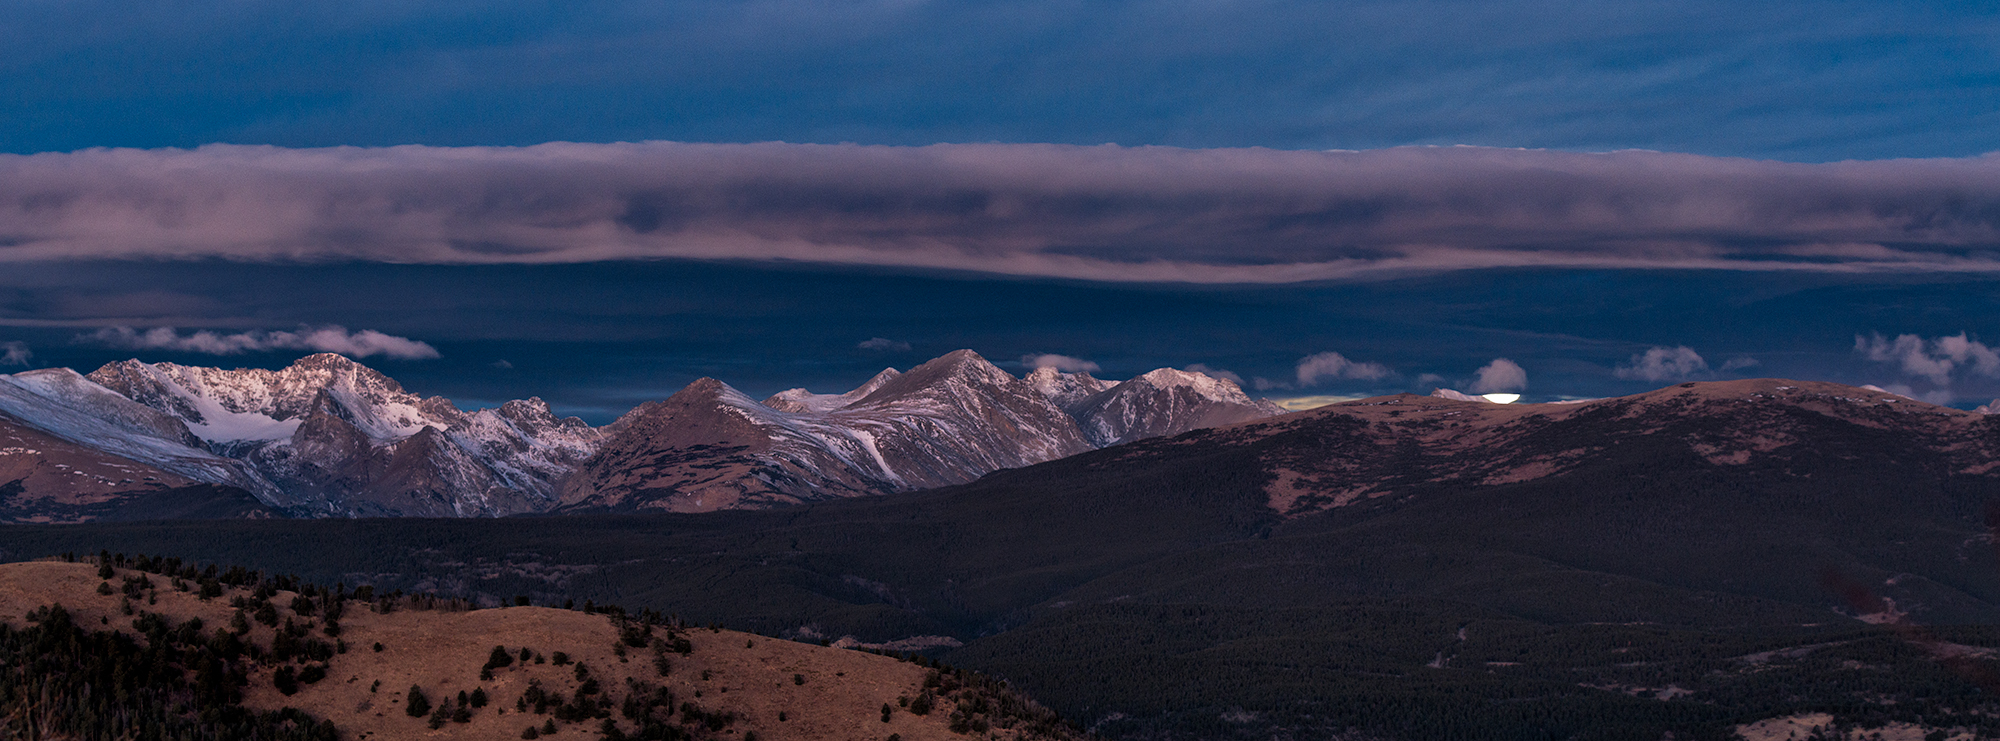 Moonset Over the Indian Peaks Wilderness. From Sugarloaf Mountain, Colorado, 2016